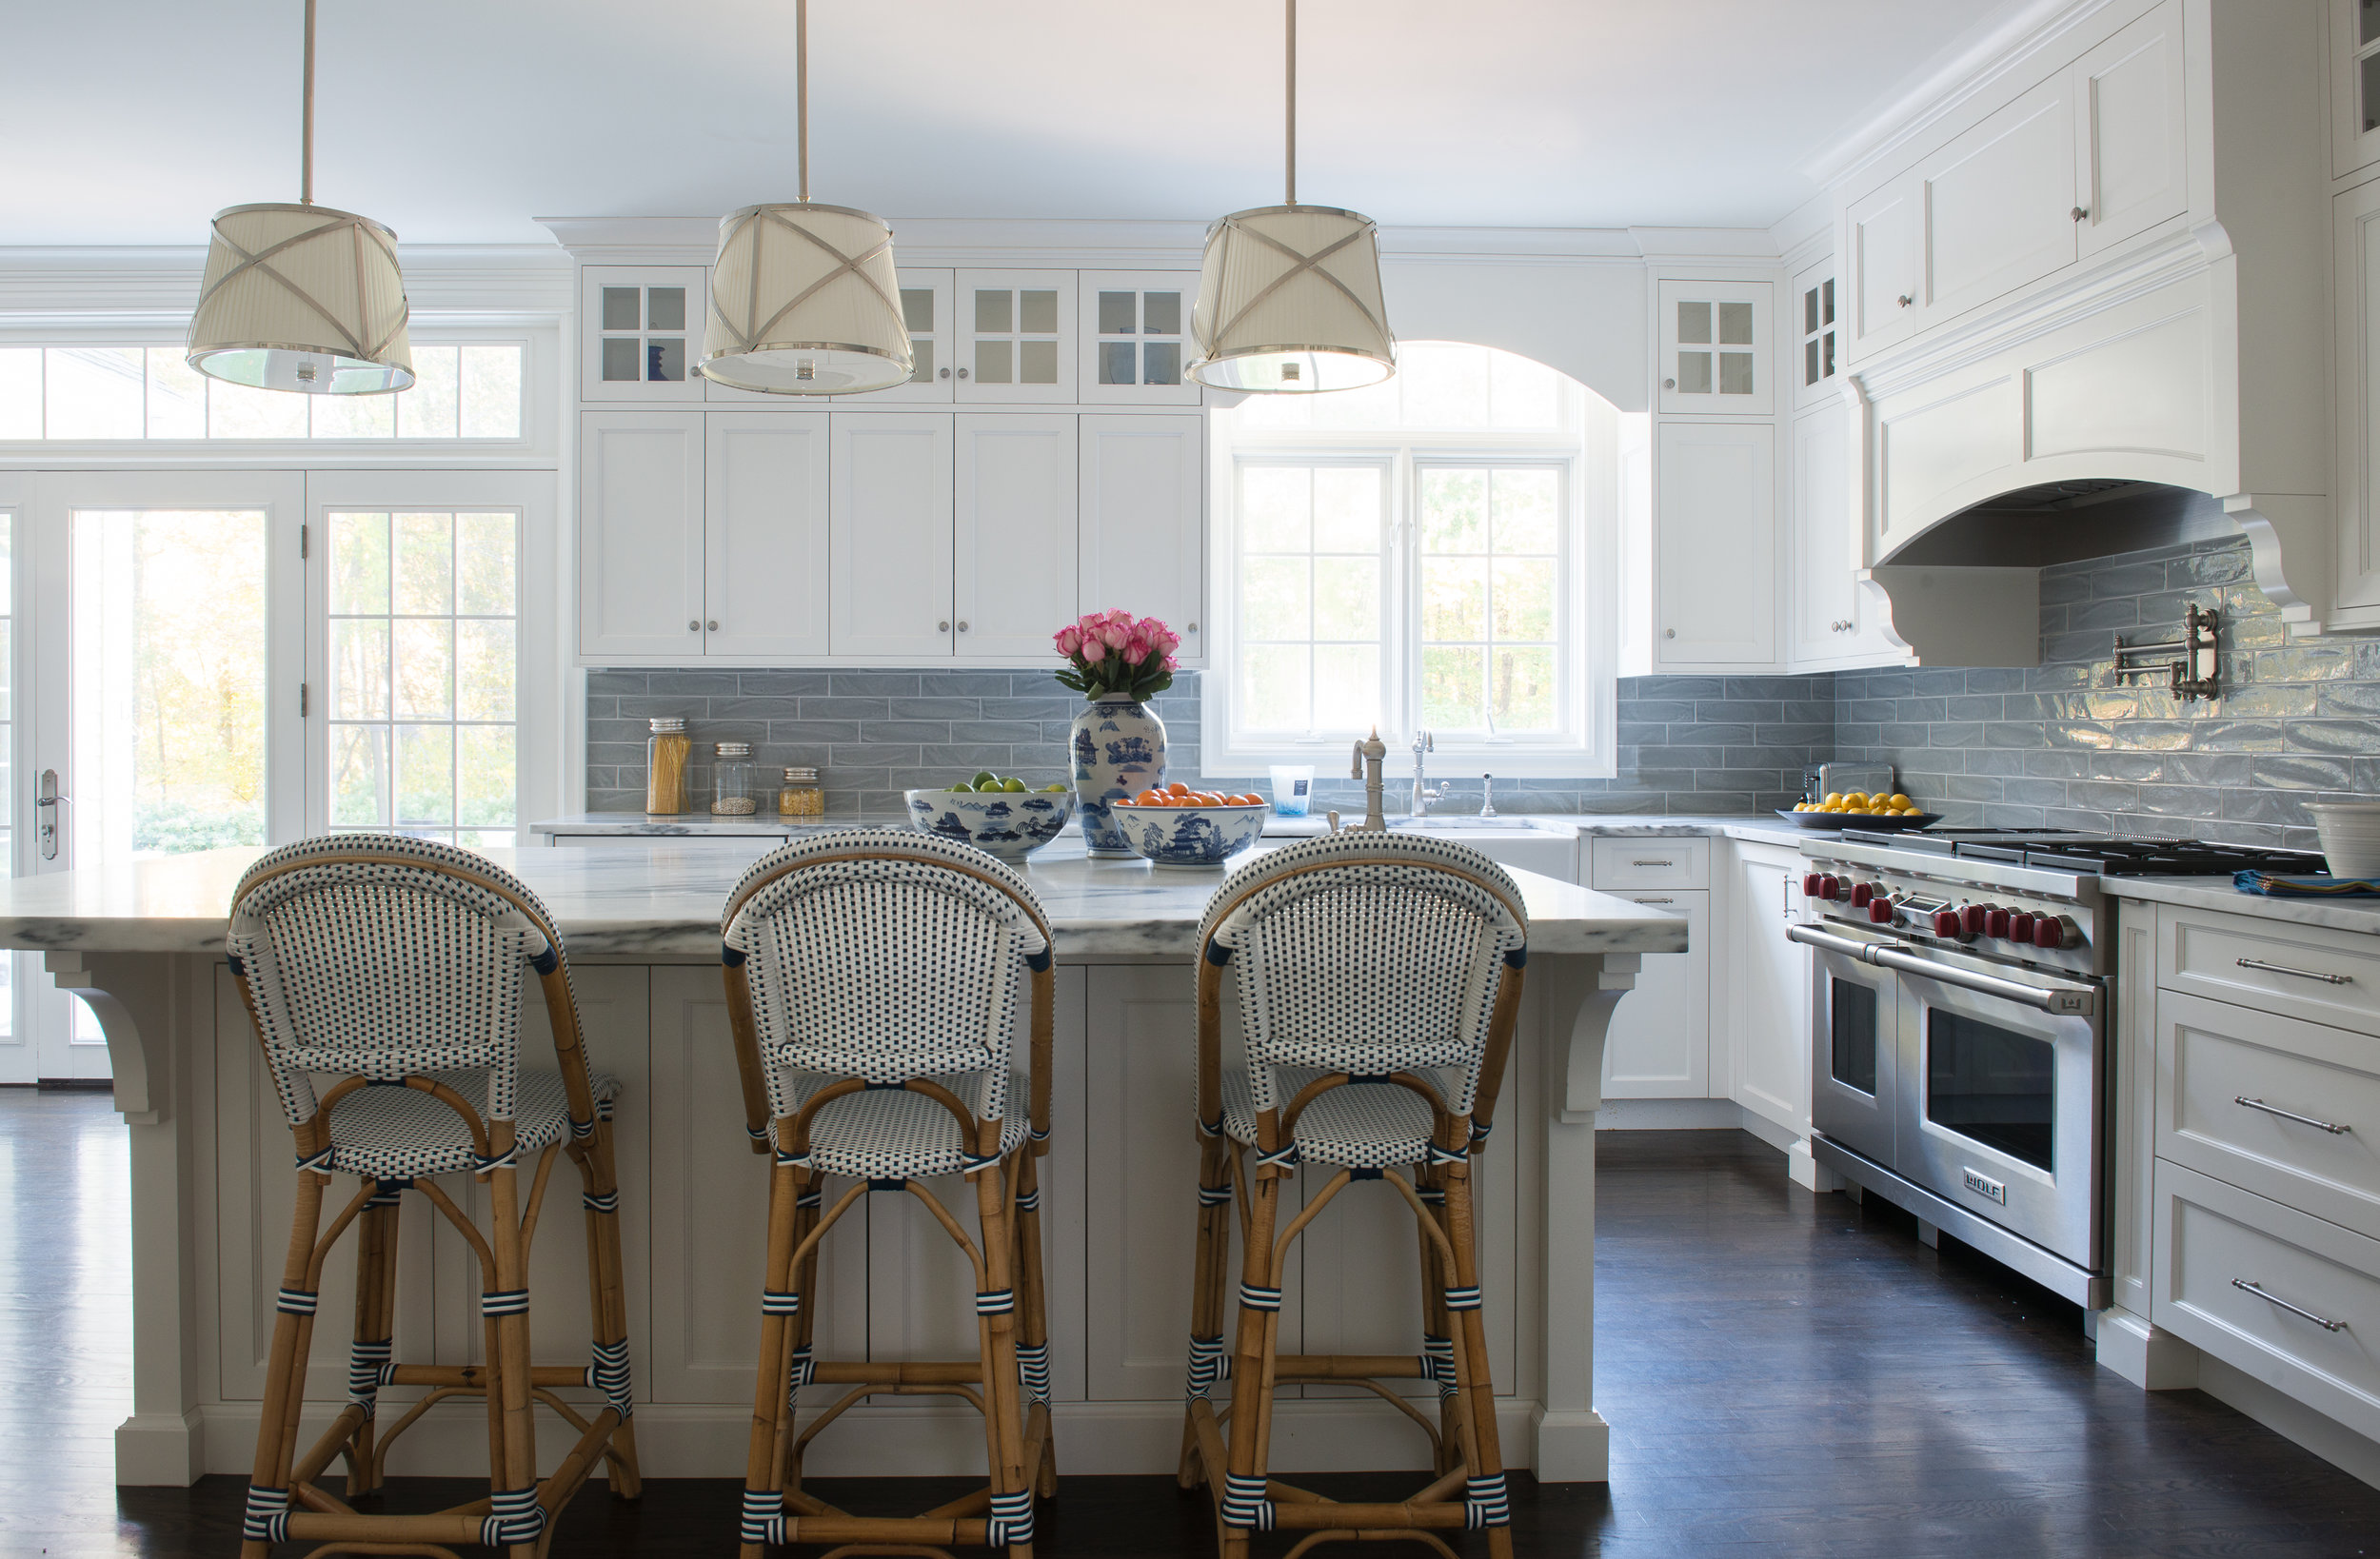 KITCHEN - ISLAND CHAIRS AND LIGHT FIXTURES